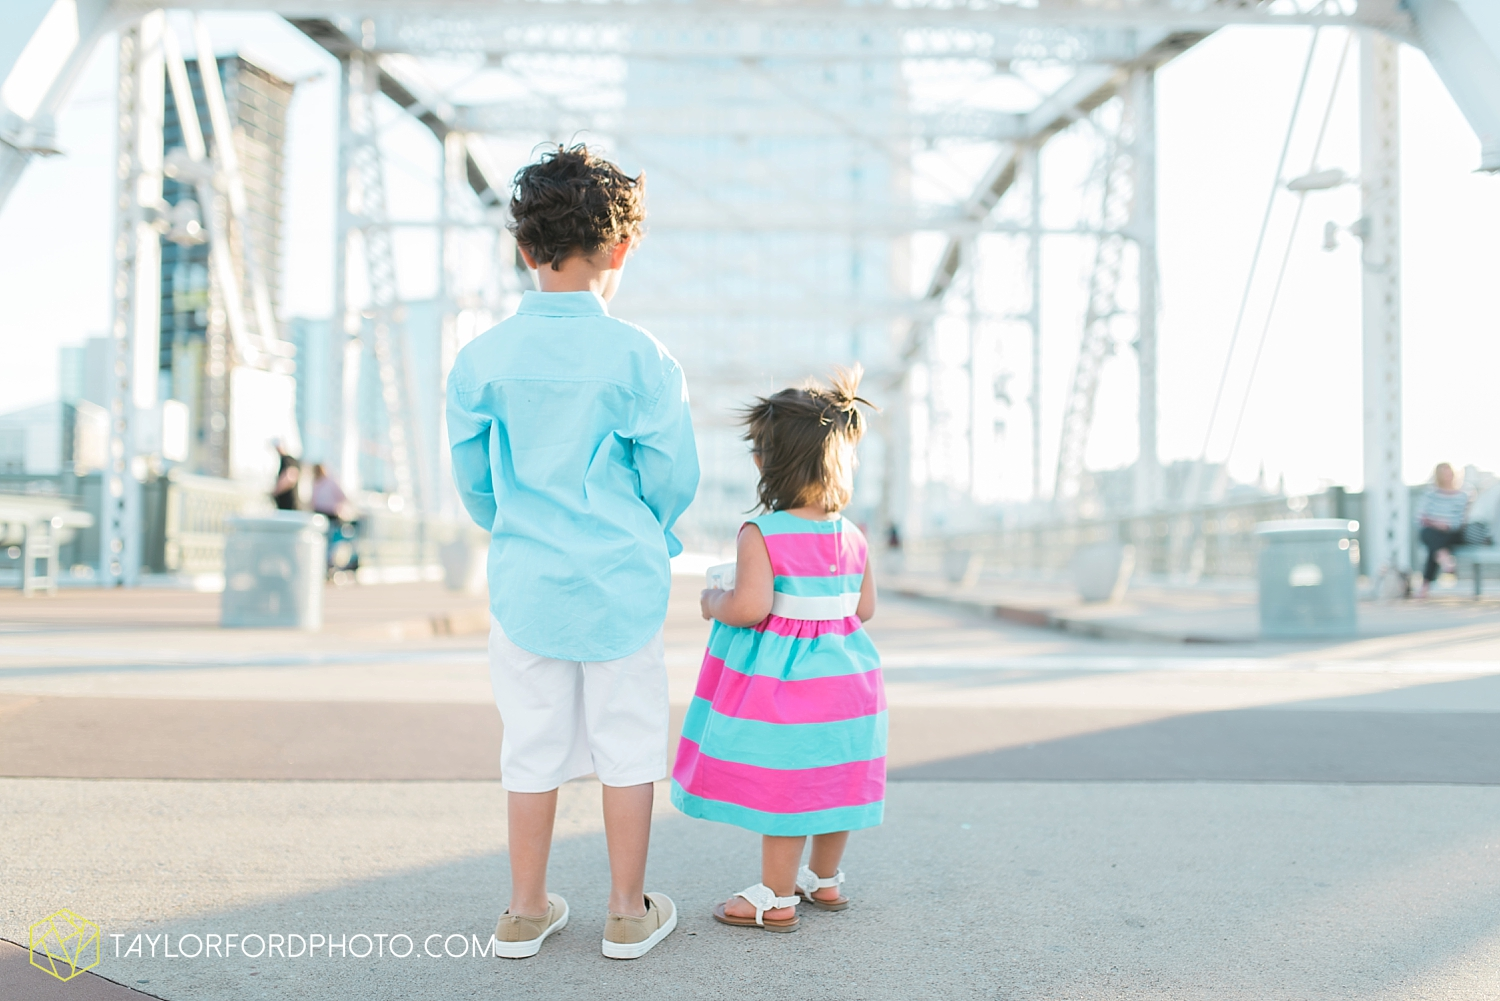 nashville_tennessee_family_photographer_taylor_ford_0464.jpg